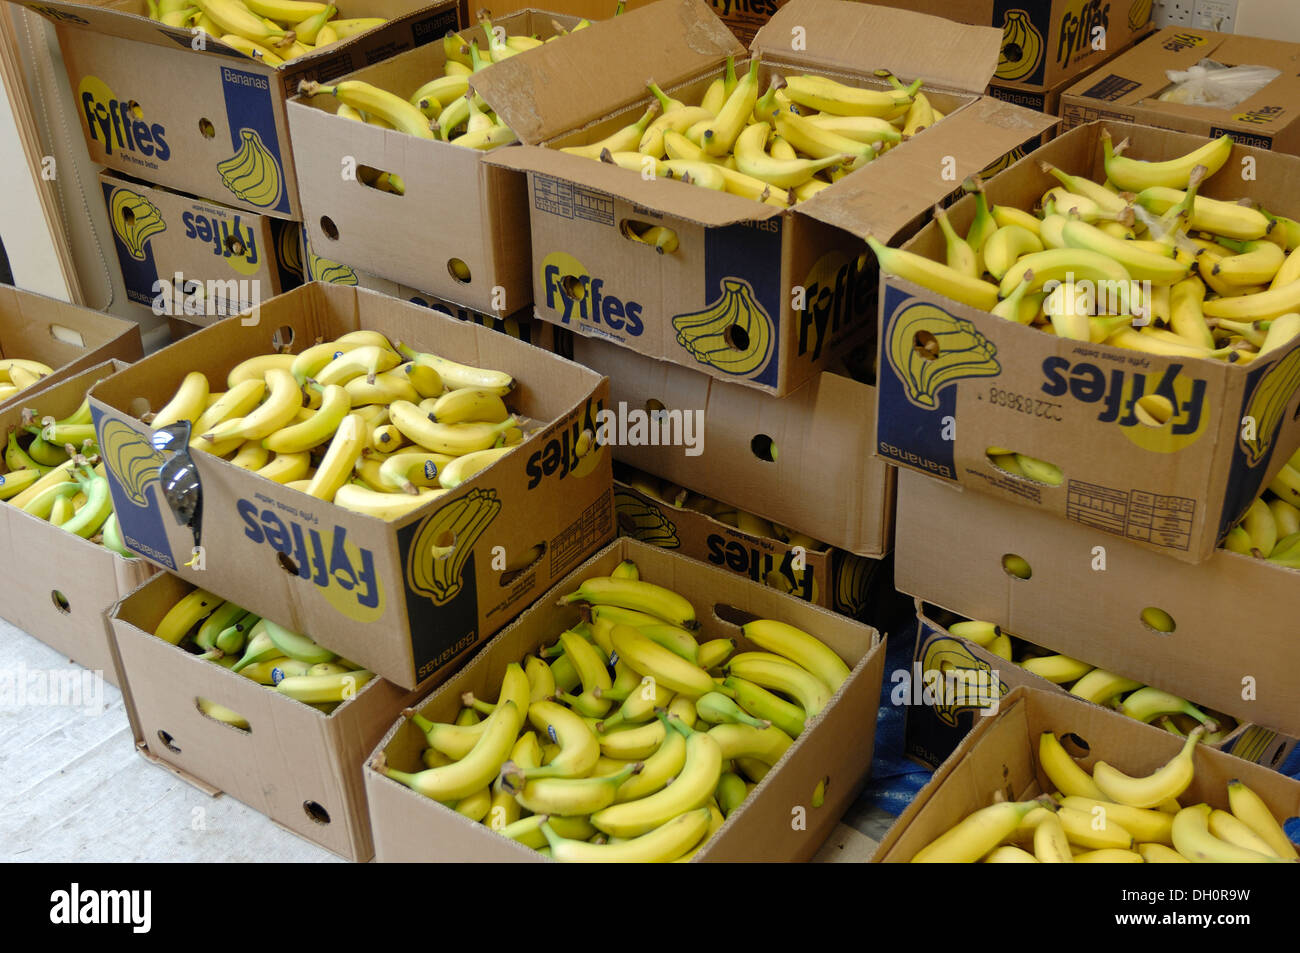 Boxes of bananas stored for riders in the Dartmoor classic cyclosportive 2013 - Stock Image